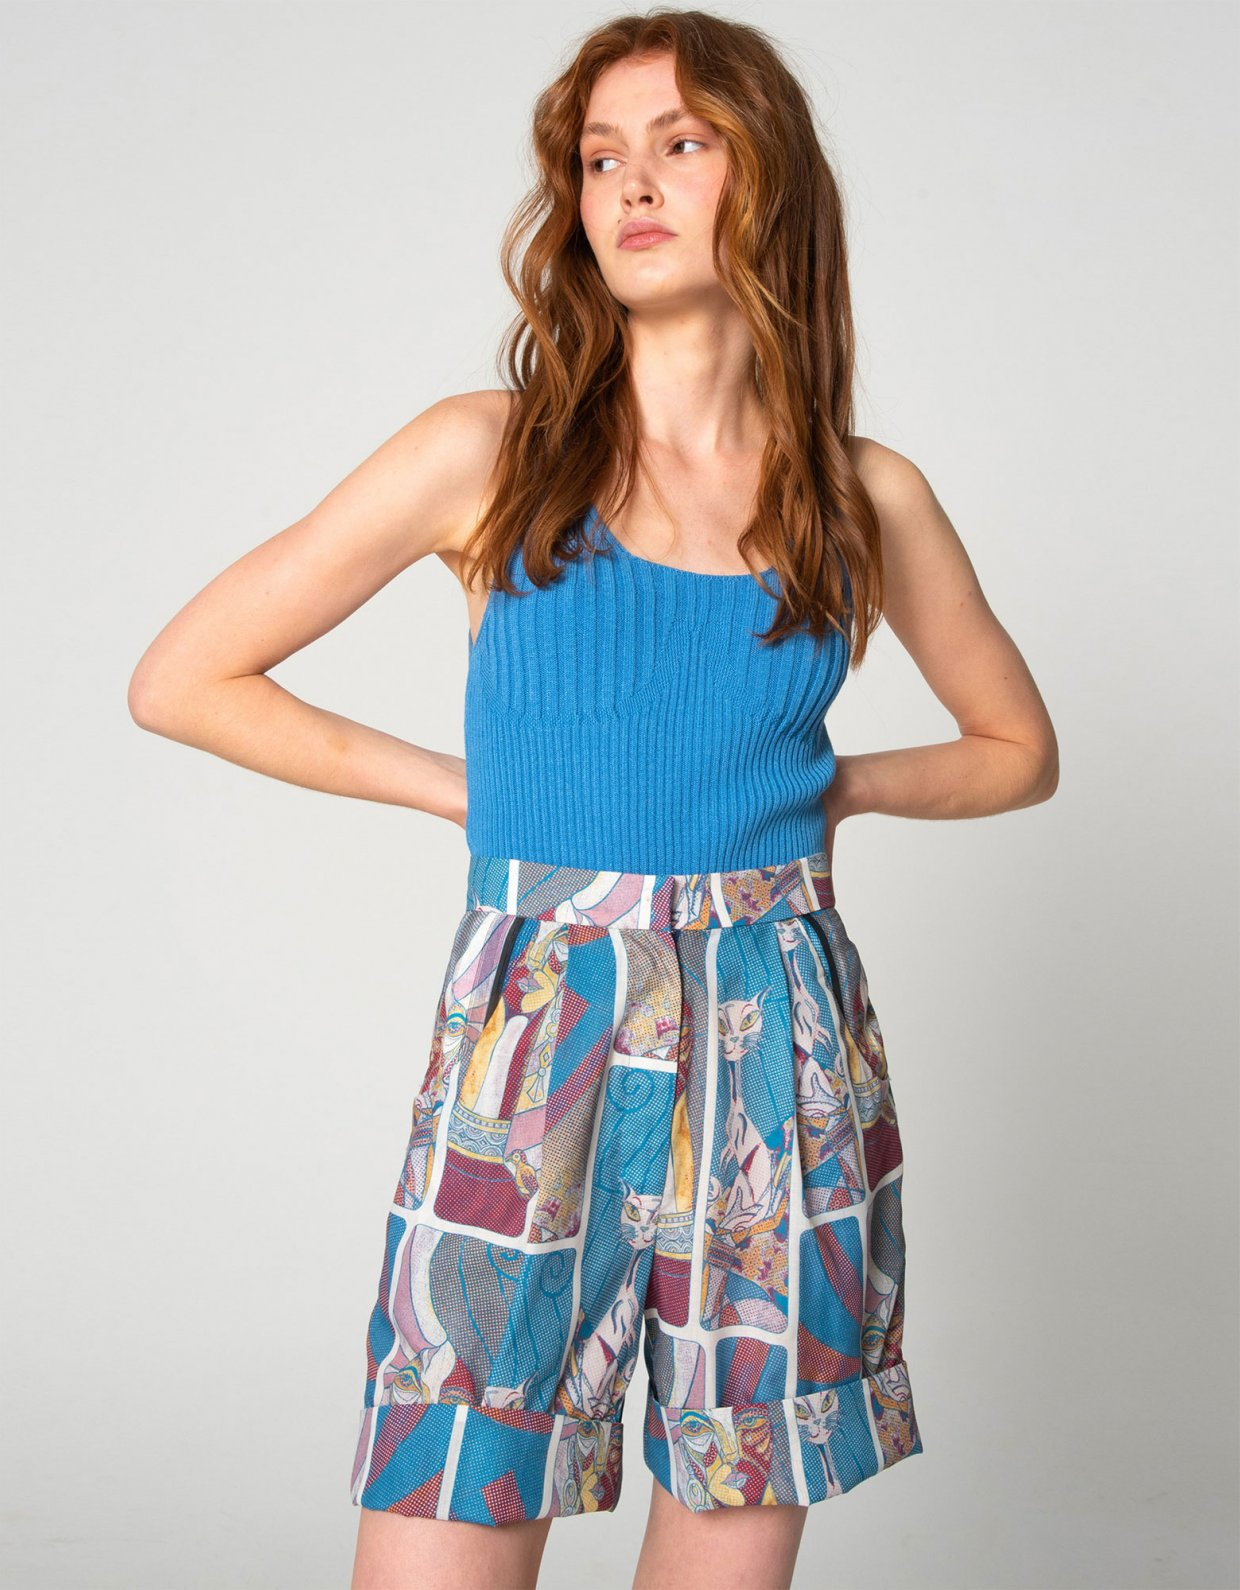 Nadia Rapti Tribes of knit top turquoise